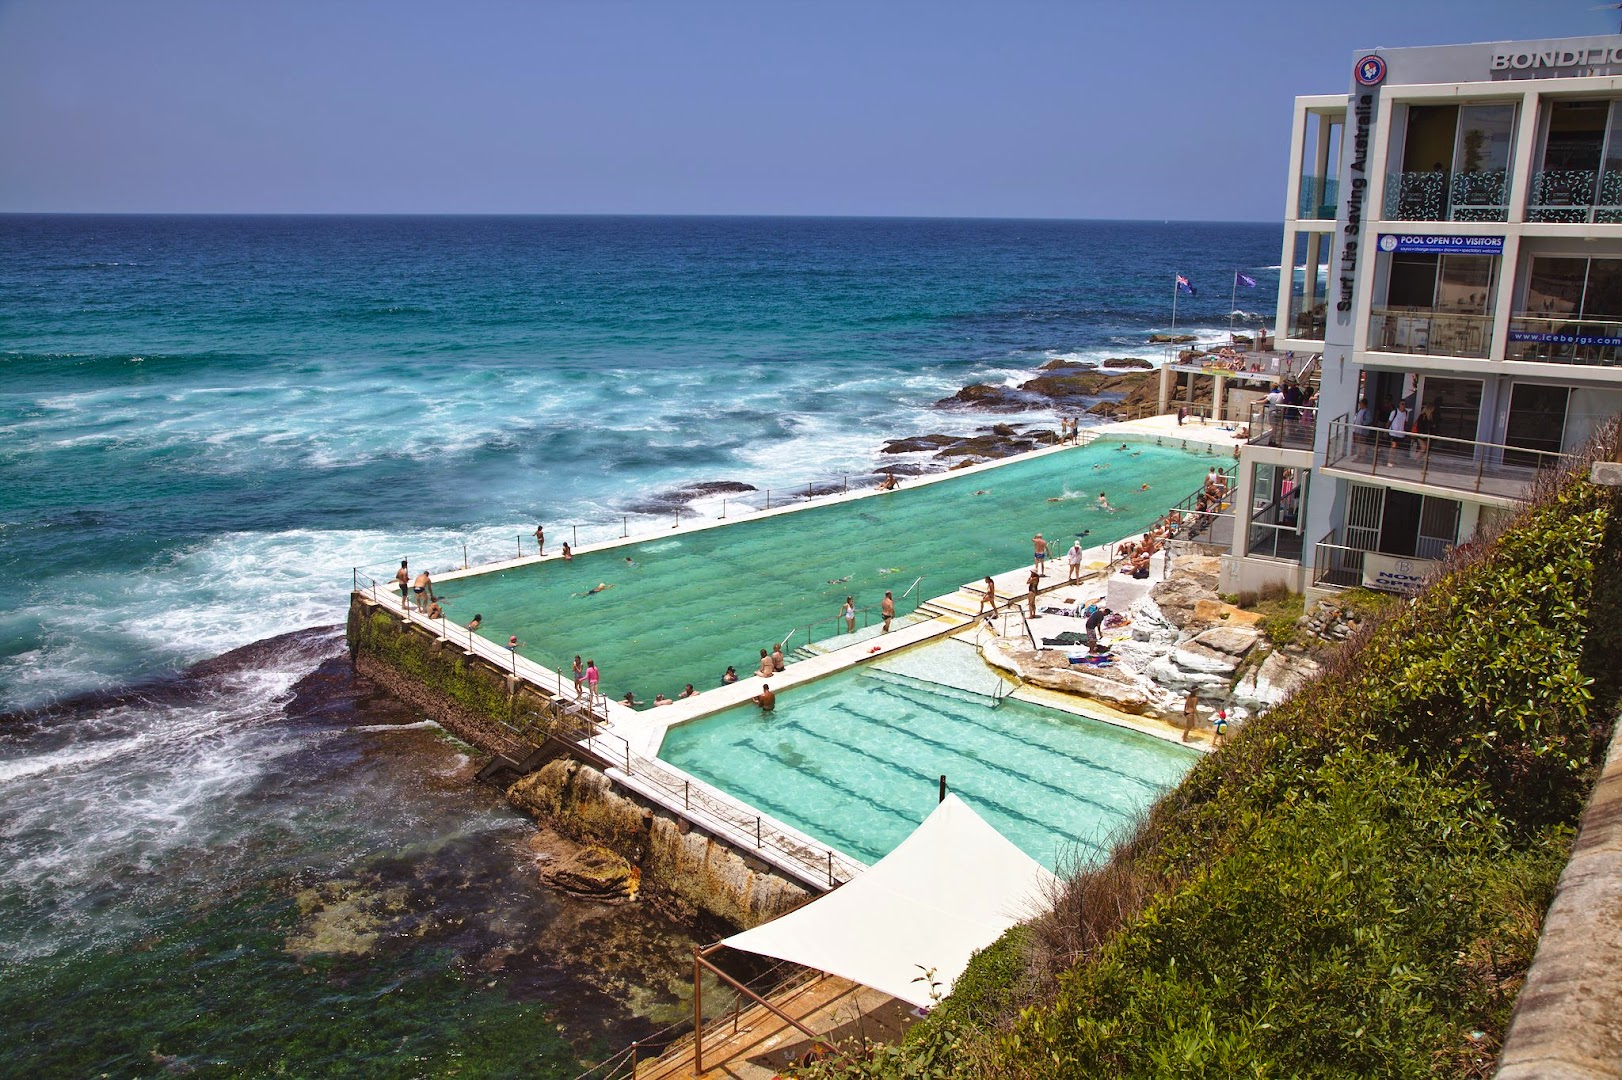 Australians like to make pools by the ocean